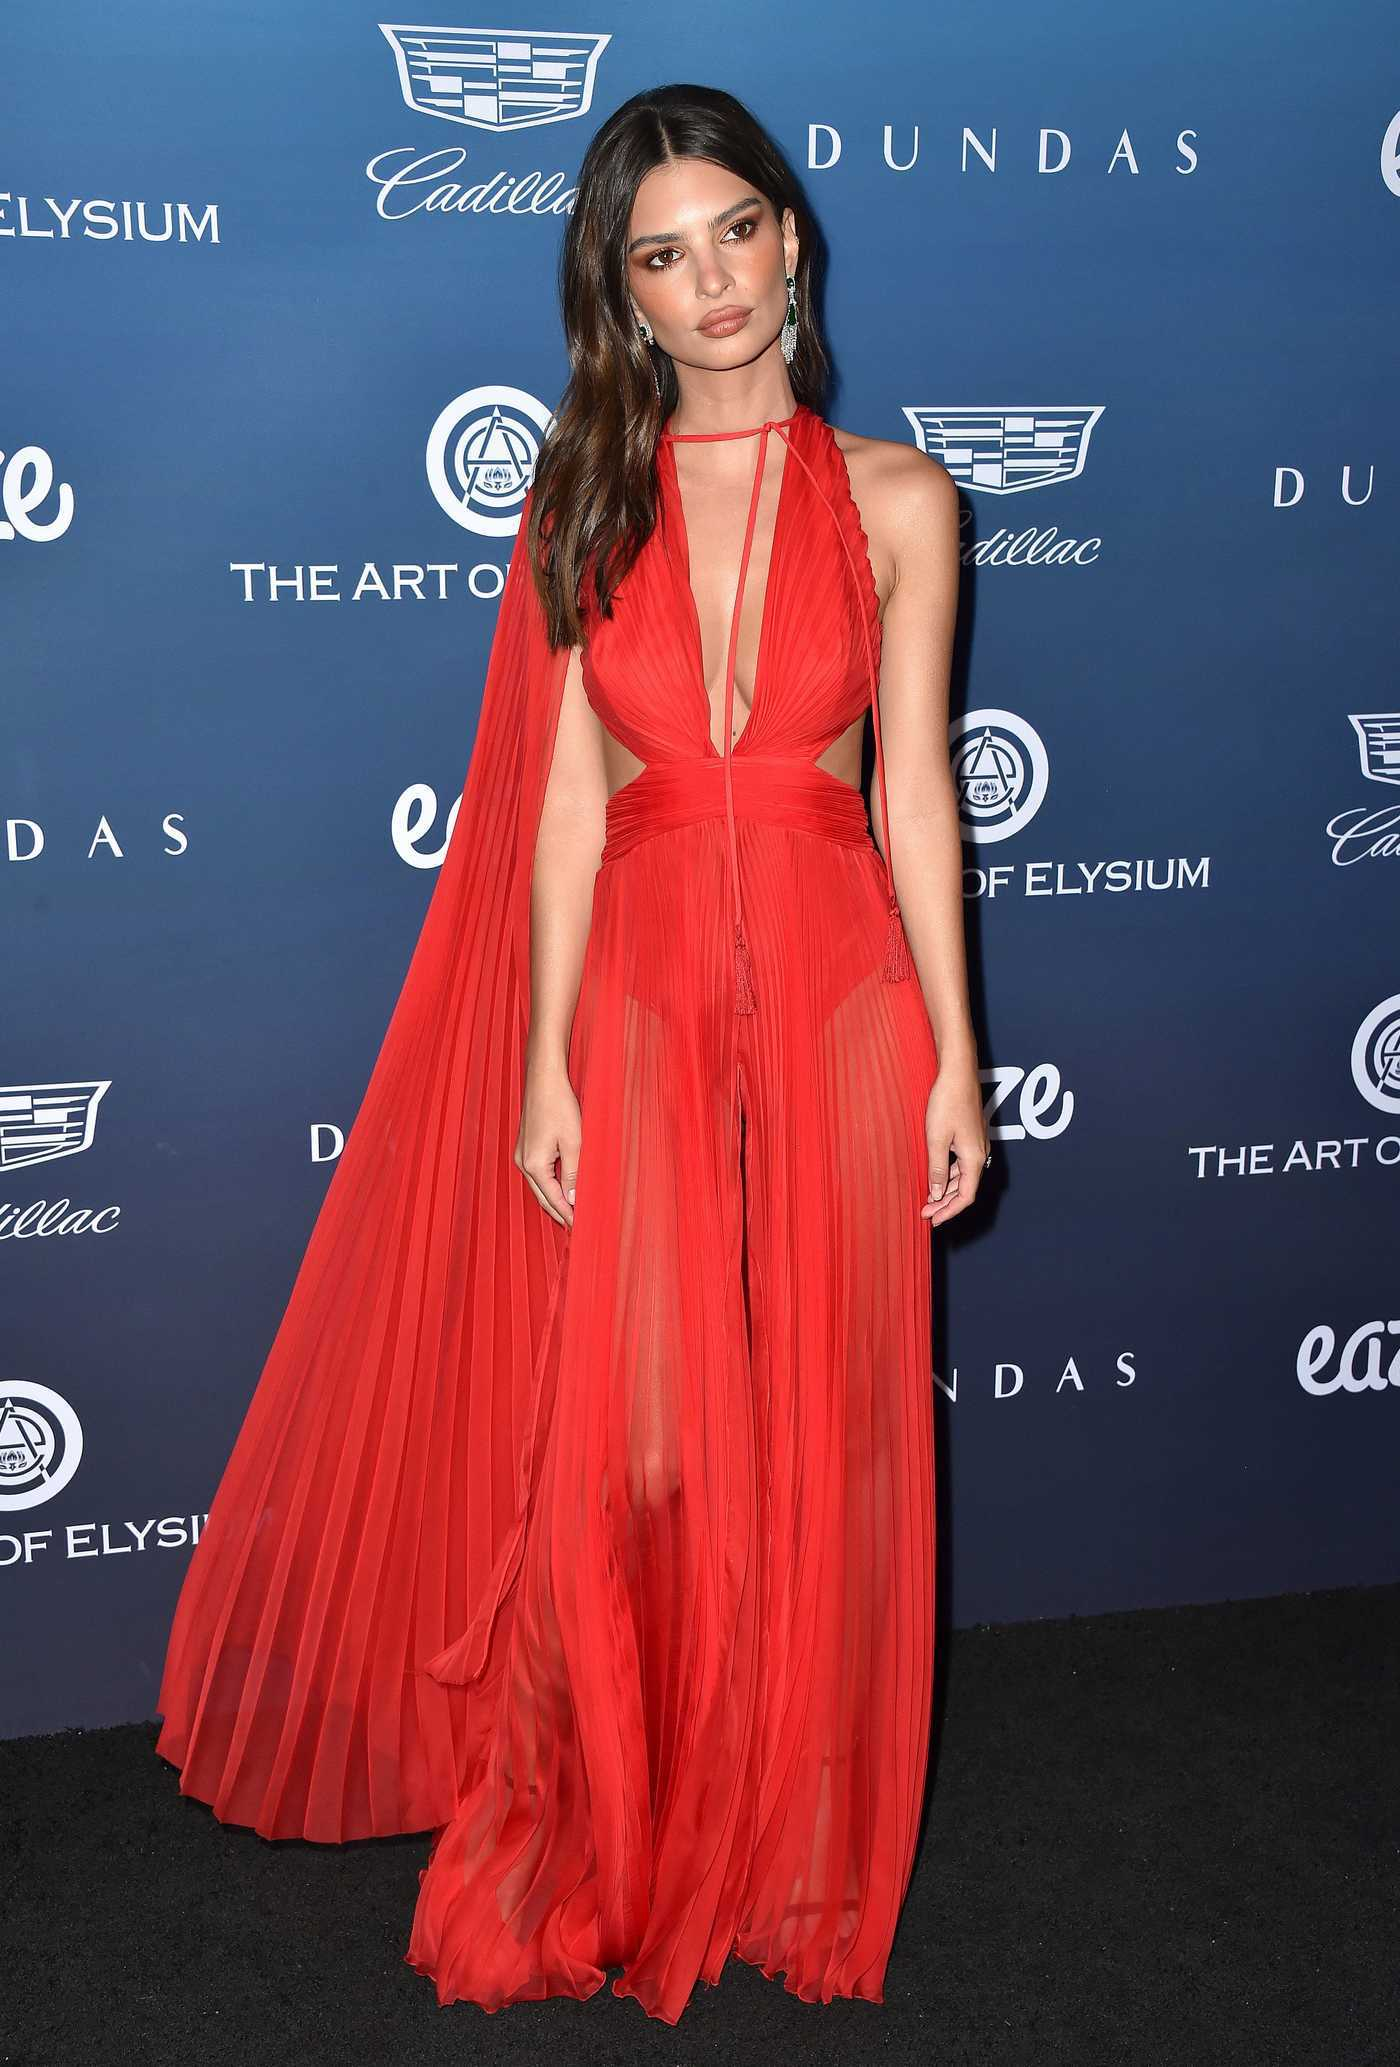 Emily Ratajkowski Attends The Art of Elysium's 12th Annual Black Tie Event Heaven in LA 01/05/2019